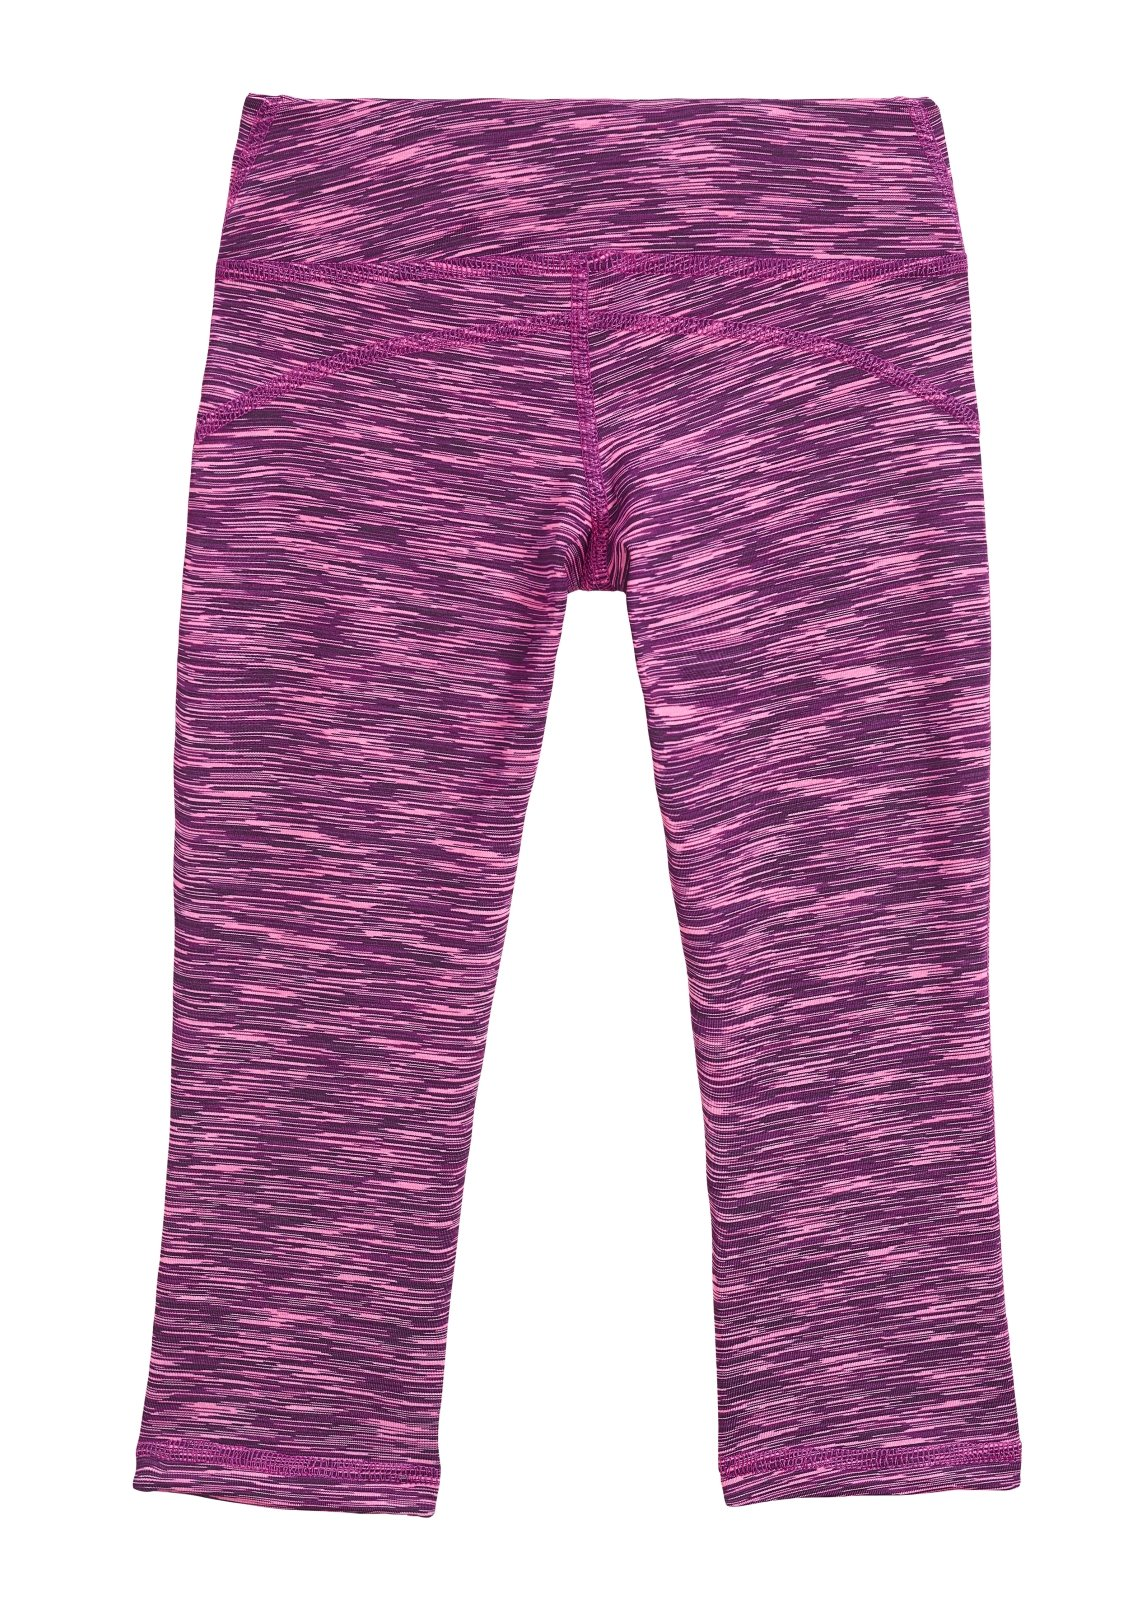 City Threads Girls' Workout Leggings Capri Summer High Performance Legging For School Camp Sports Dance Gymnastics and Playing, Pink/Purple/Black, 16 by City Threads (Image #2)